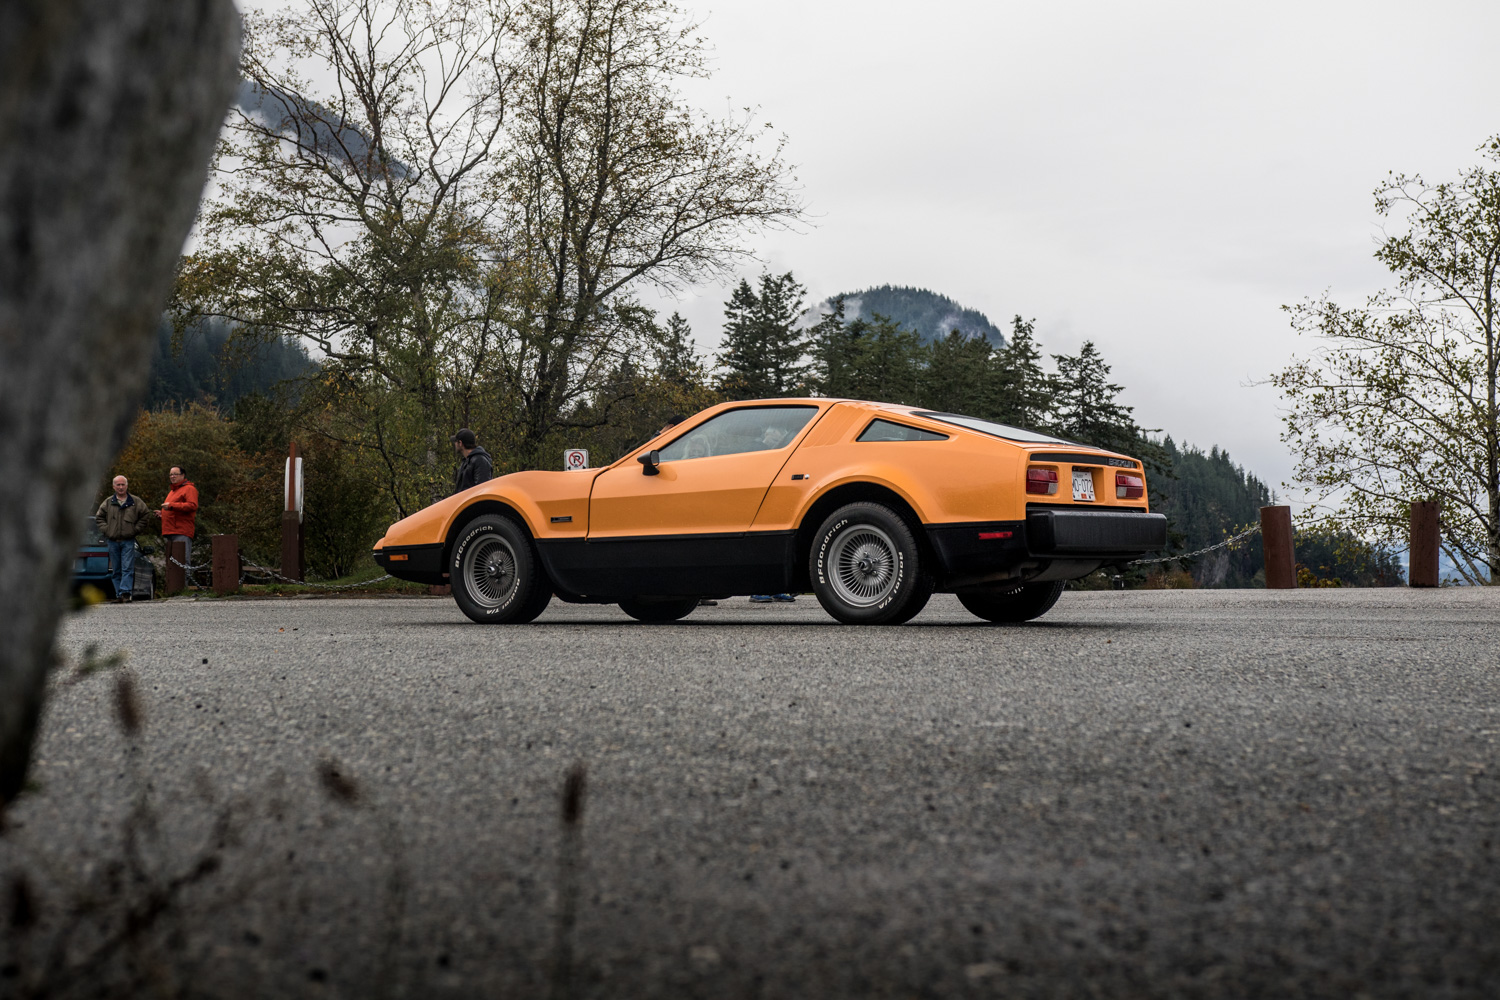 DeLorean DMC-12 vs Bricklin SV1 side shot orange